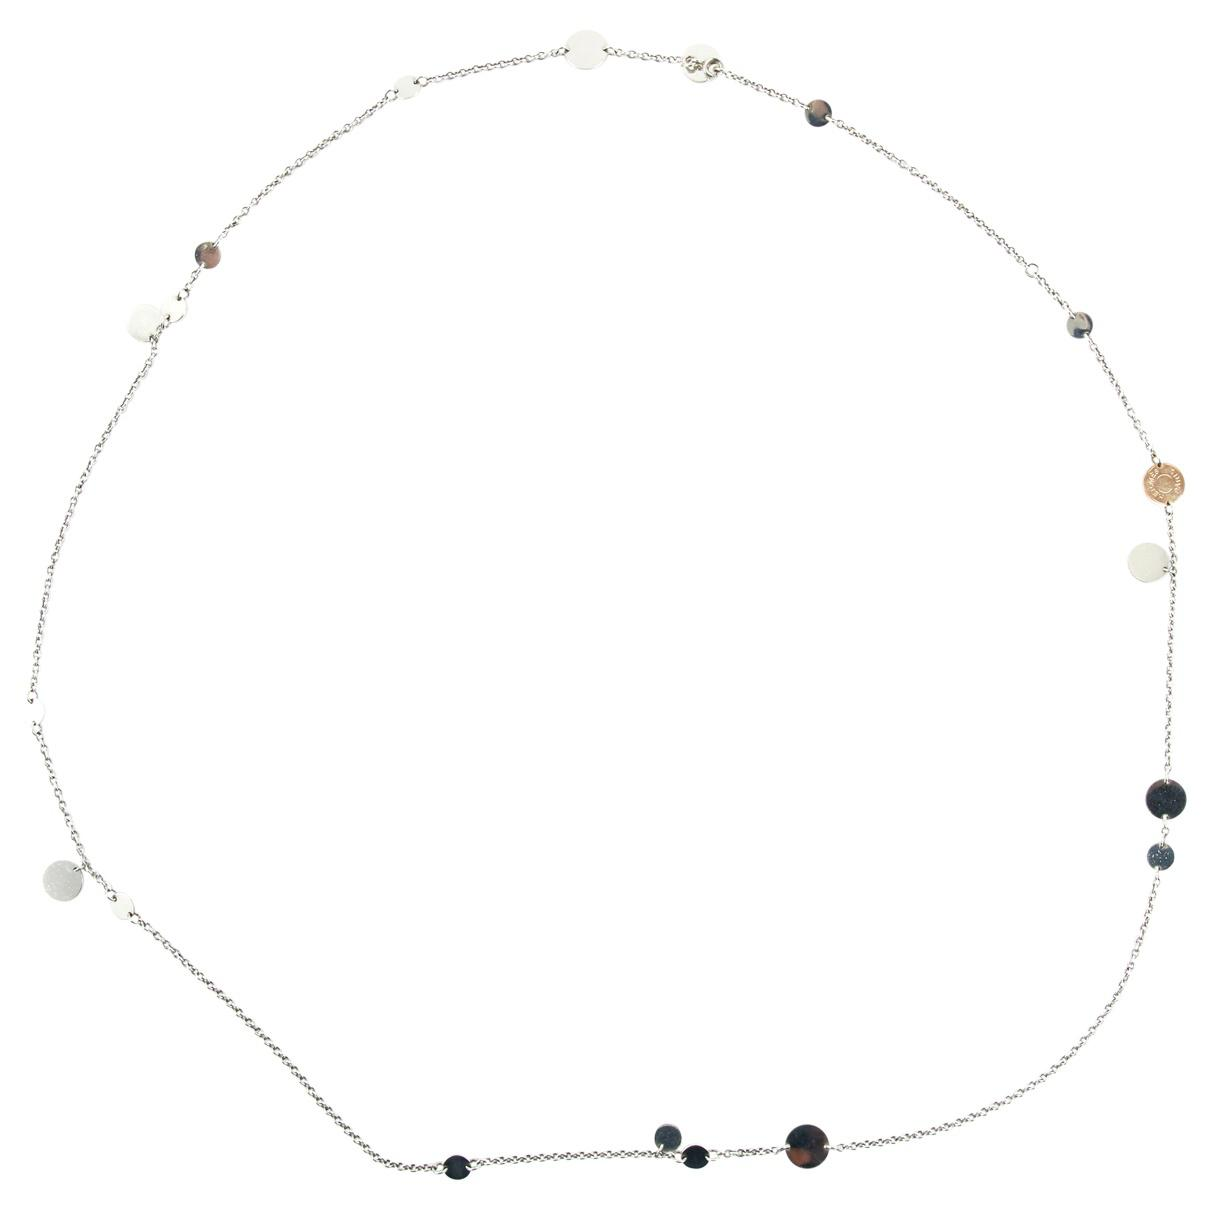 Lyst - Hermès Confetti Pink Gold Necklace in Metallic 8e5960f3bb9